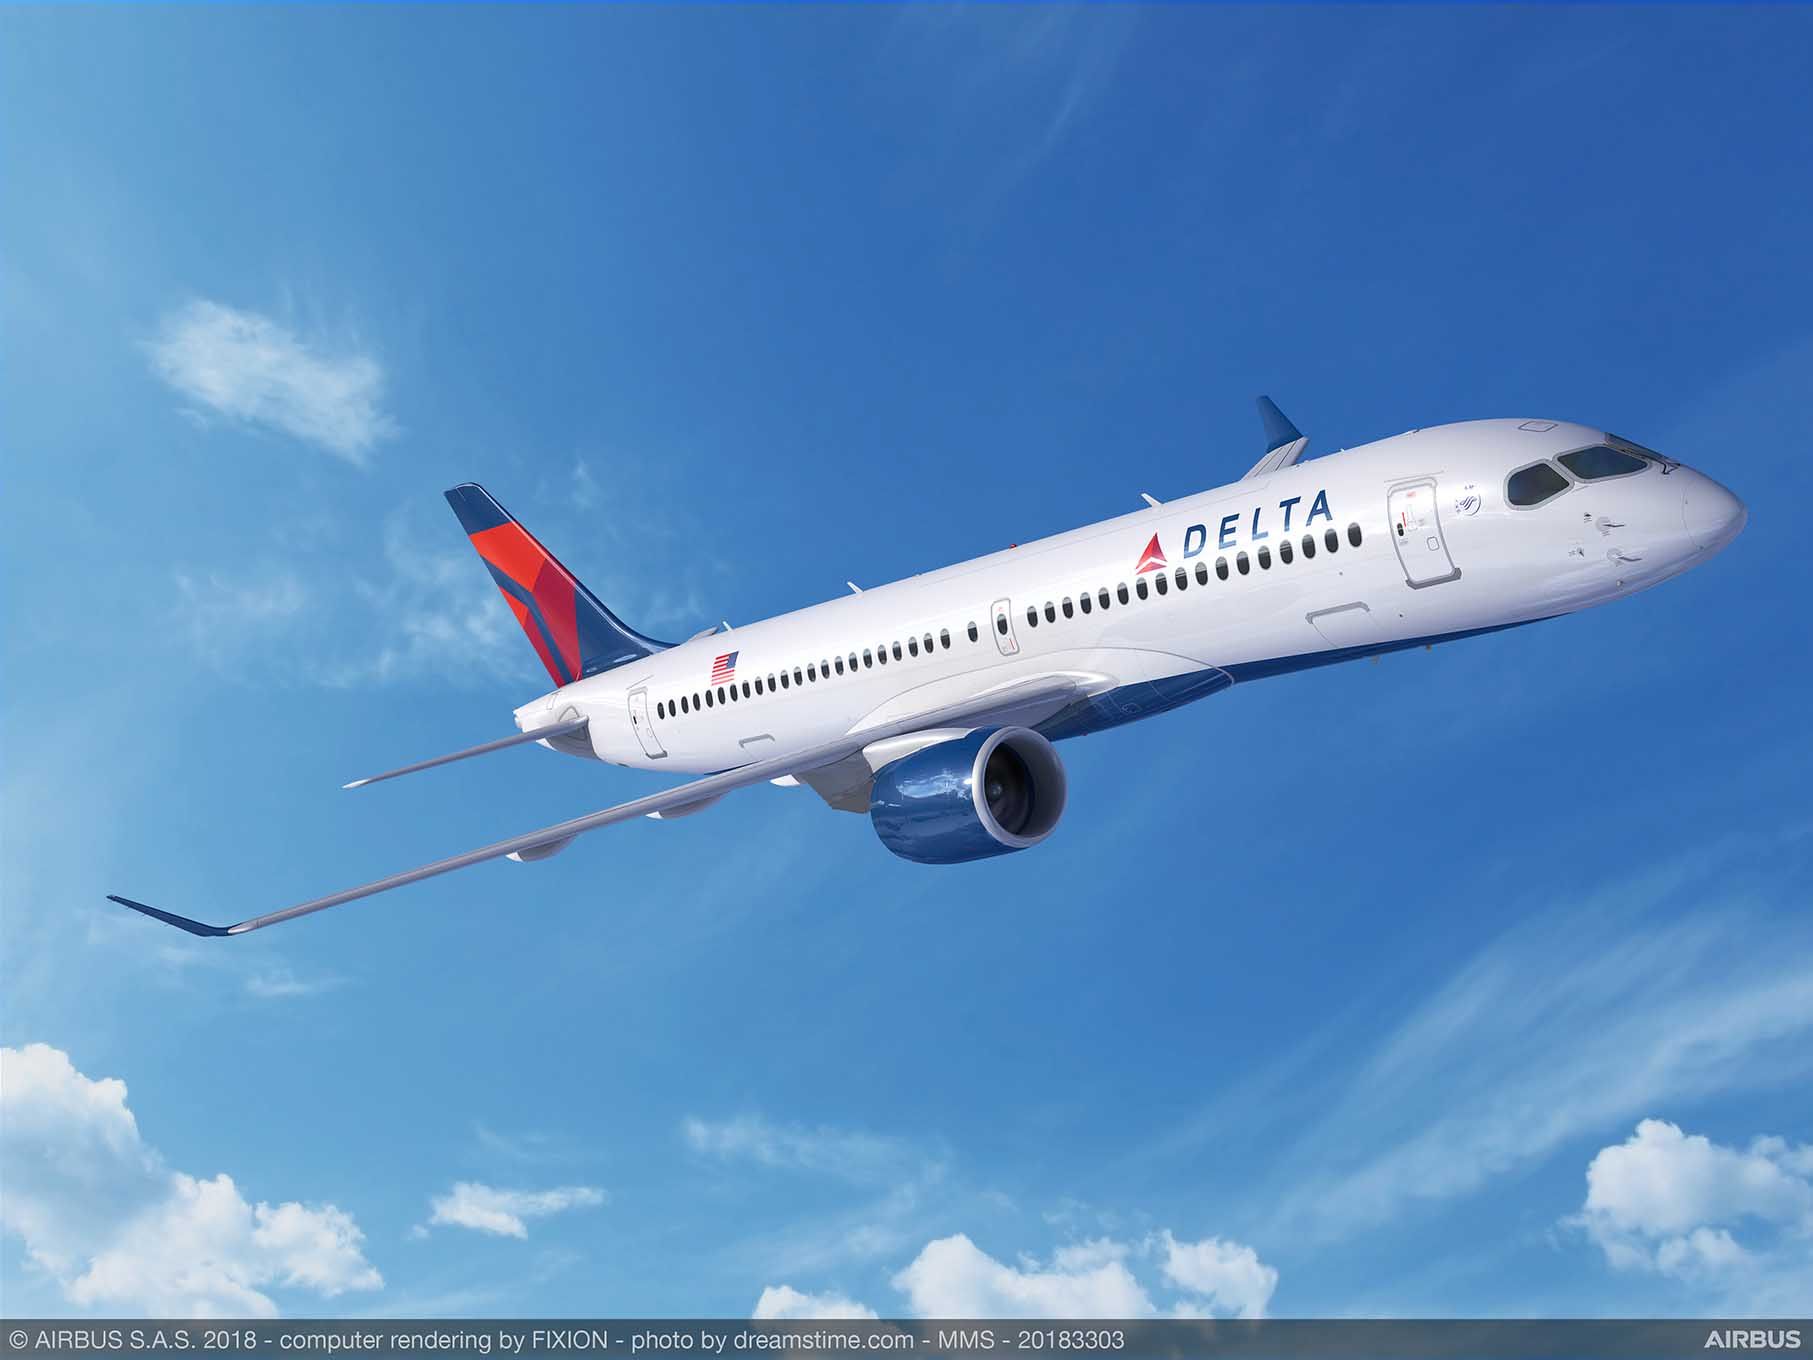 Delta Air Lines Announces Expanded Service to Caribbean This Winter